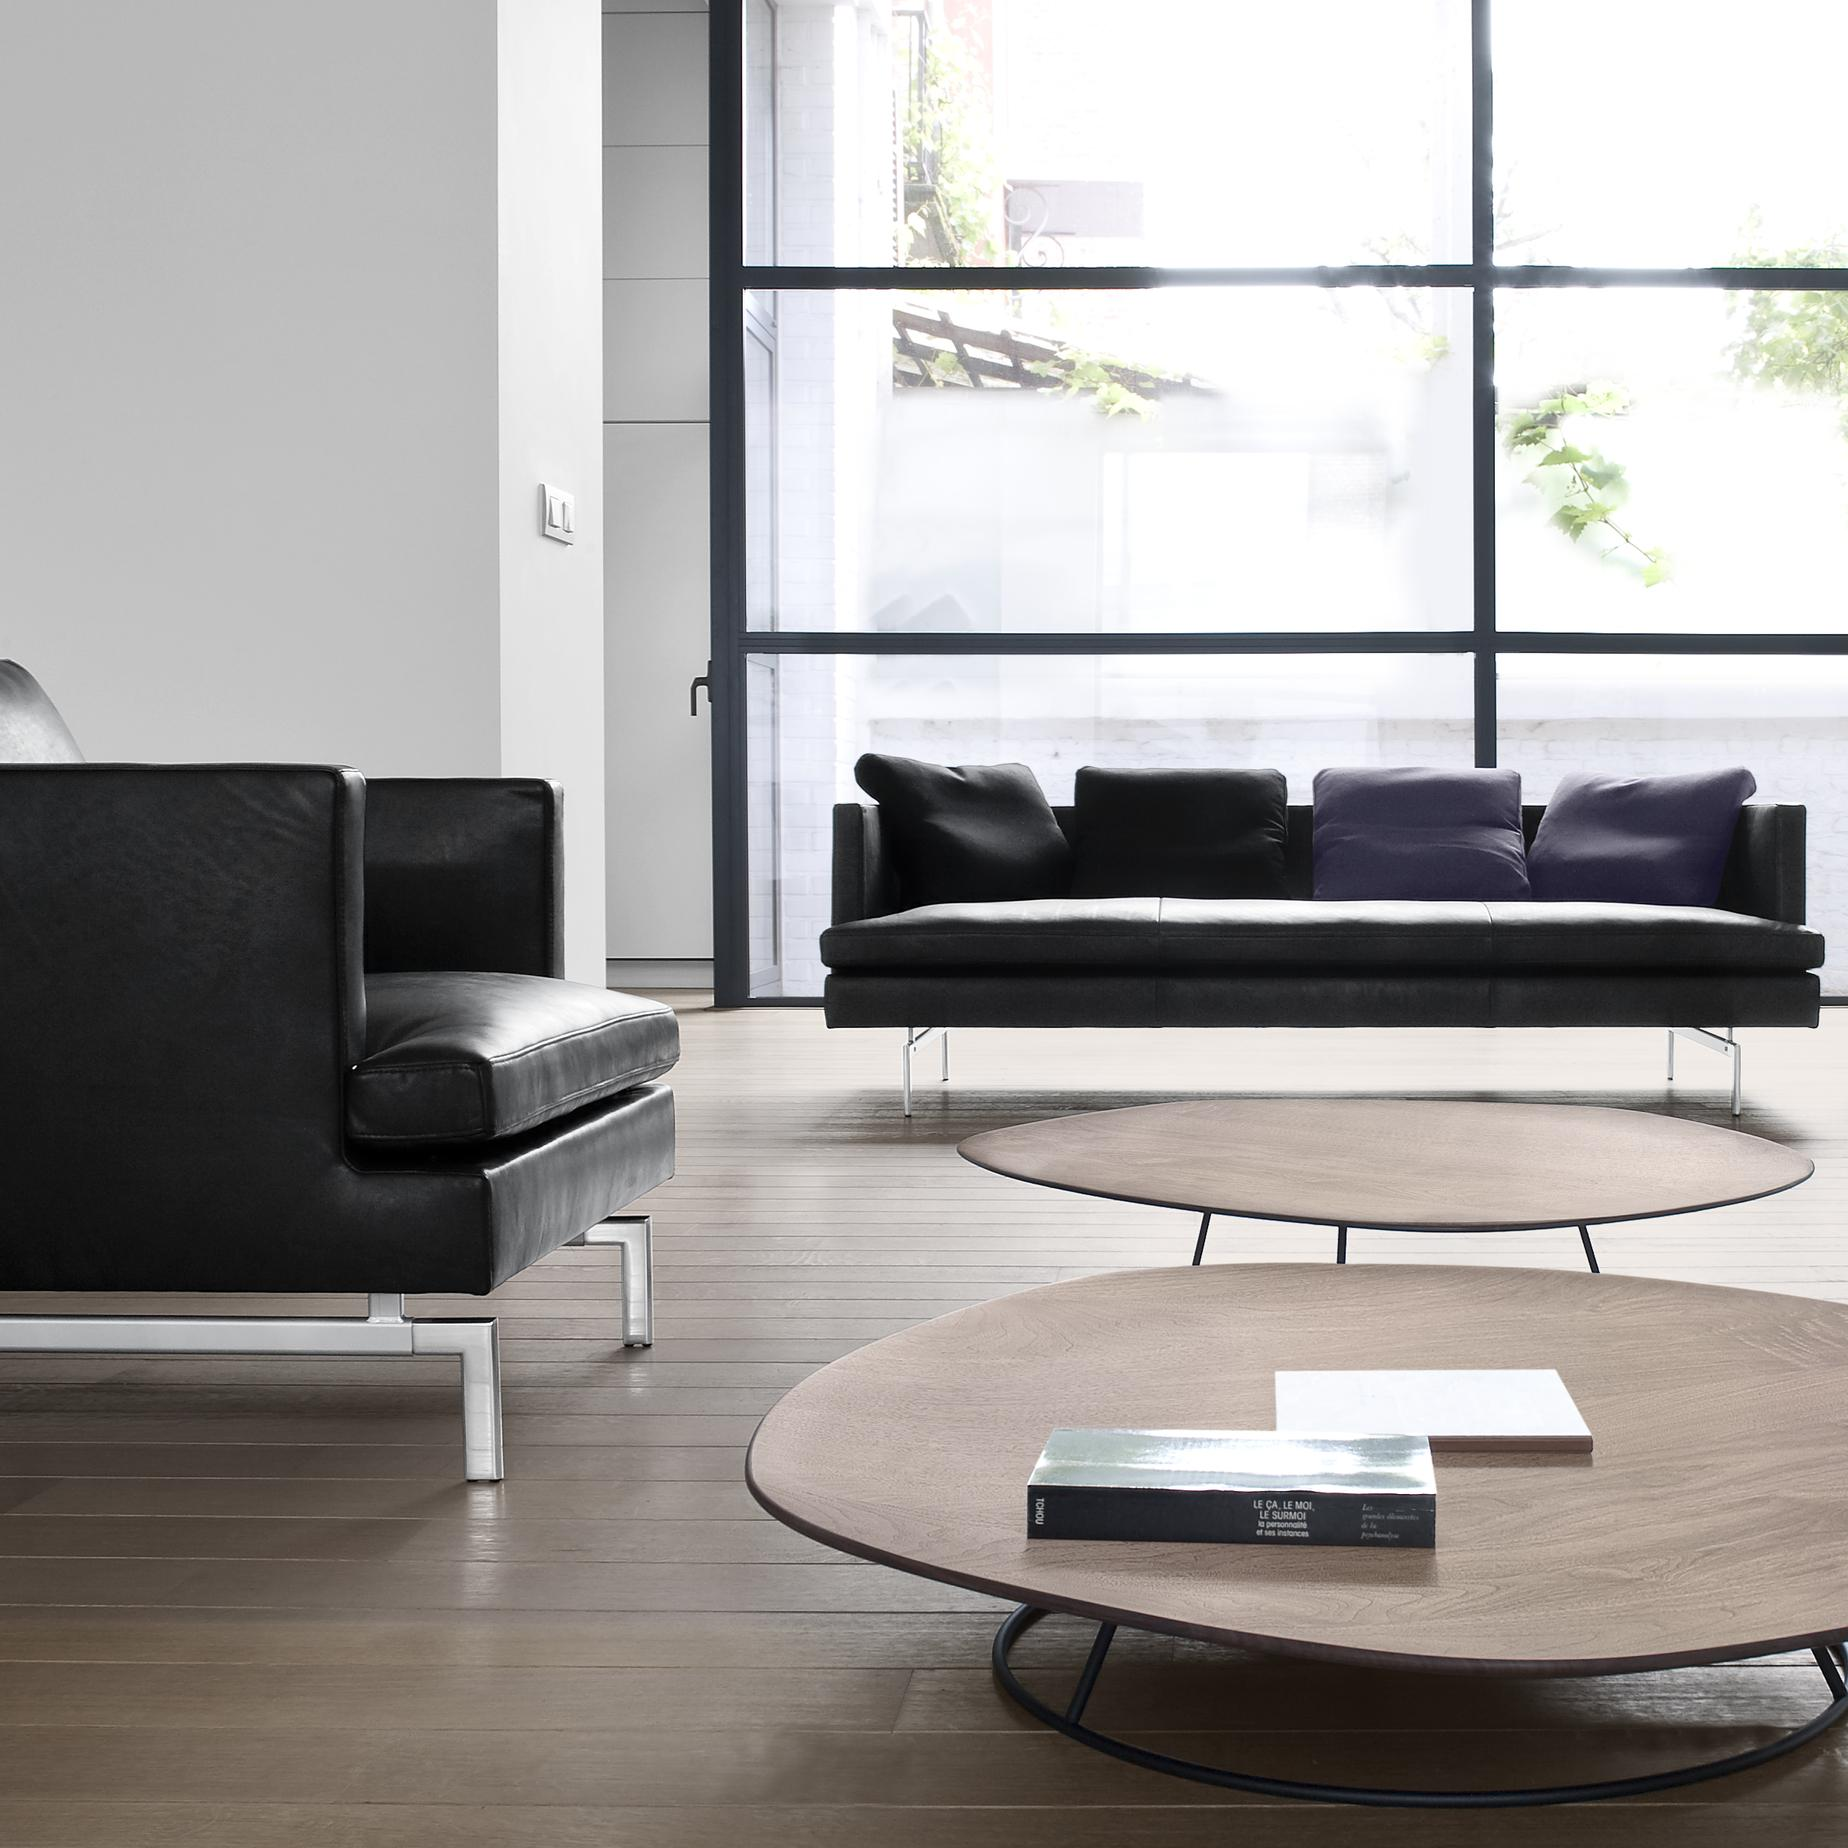 Pebble occasional tables designer air division ligne roset for Table yoyo ligne roset